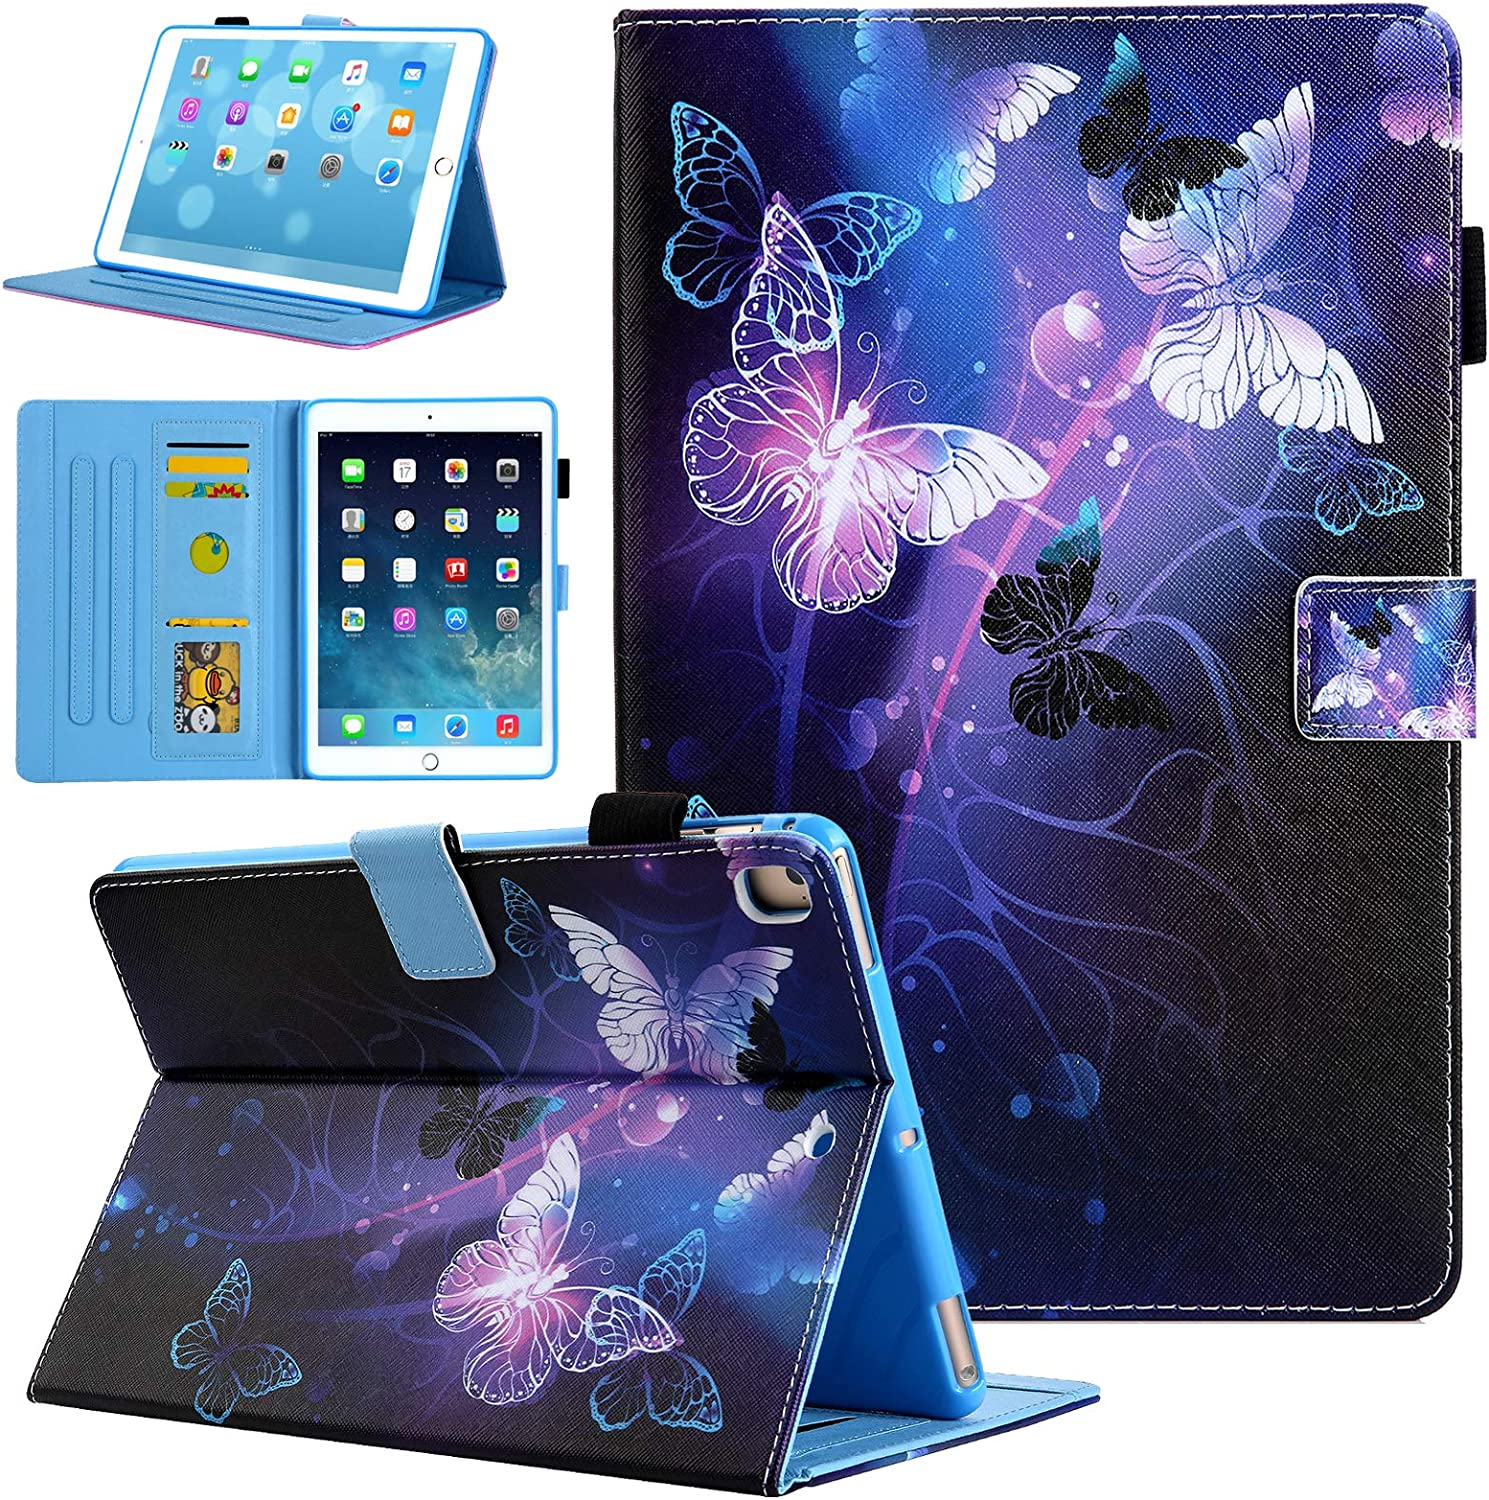 iPad 10.2 Case 2019 2020, iPad 7th / 8th Generation Case, Alugs Multi-Angle Protective PU Leather Folio Cover with Auto Wake/Sleep for iPad 7th 8th Generation 10.2 Inch, Purple Butterfly